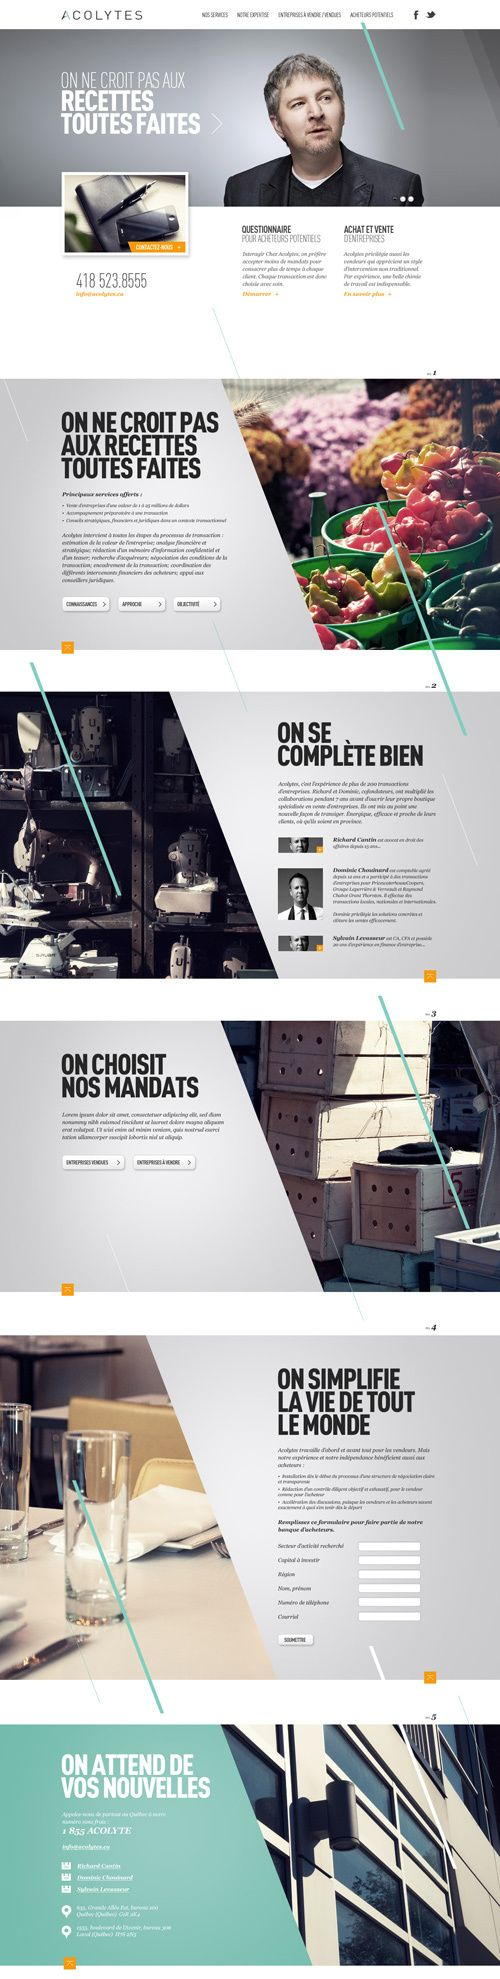 Acolytes by Alexandre Desjardins, via Behance